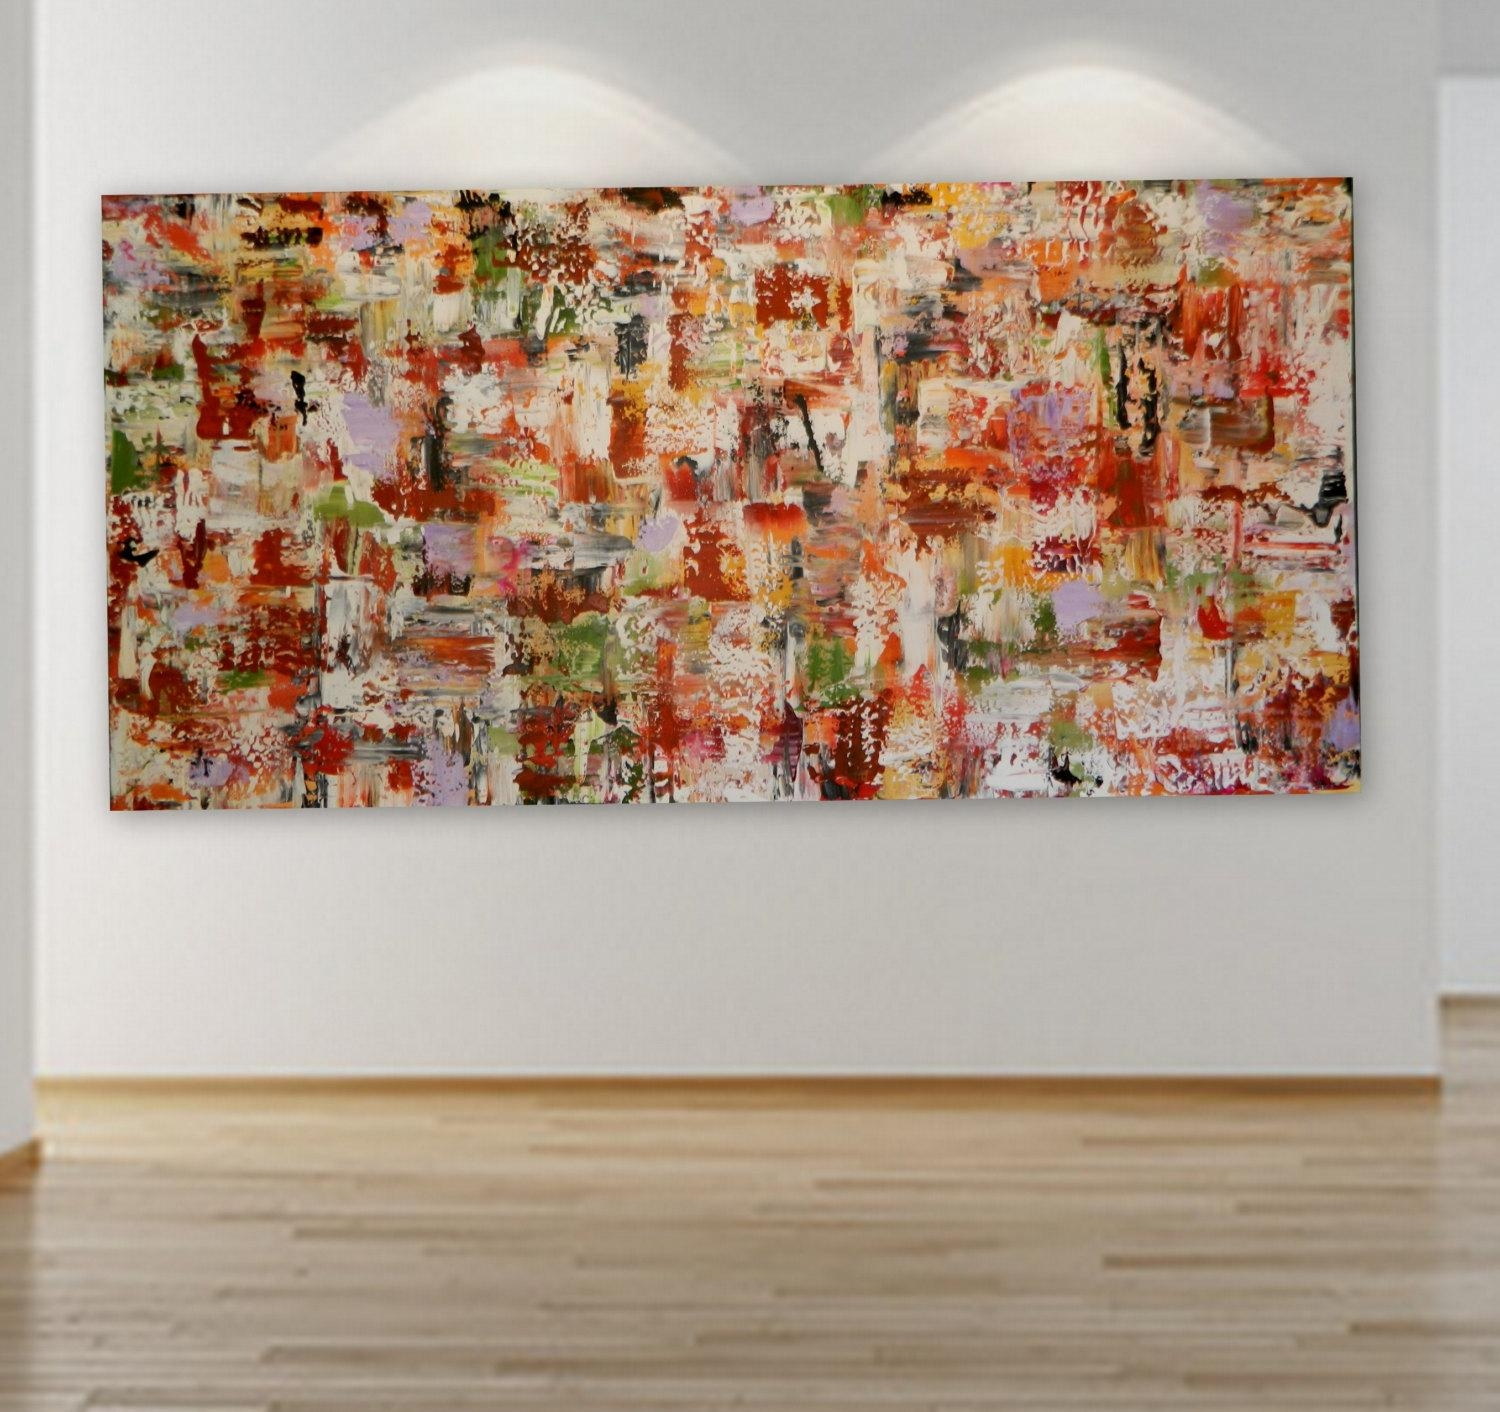 Huge Grande Original Abstract Painting Wall Art Decor Red Yellow Regarding Red And Yellow Wall Art (Image 11 of 20)